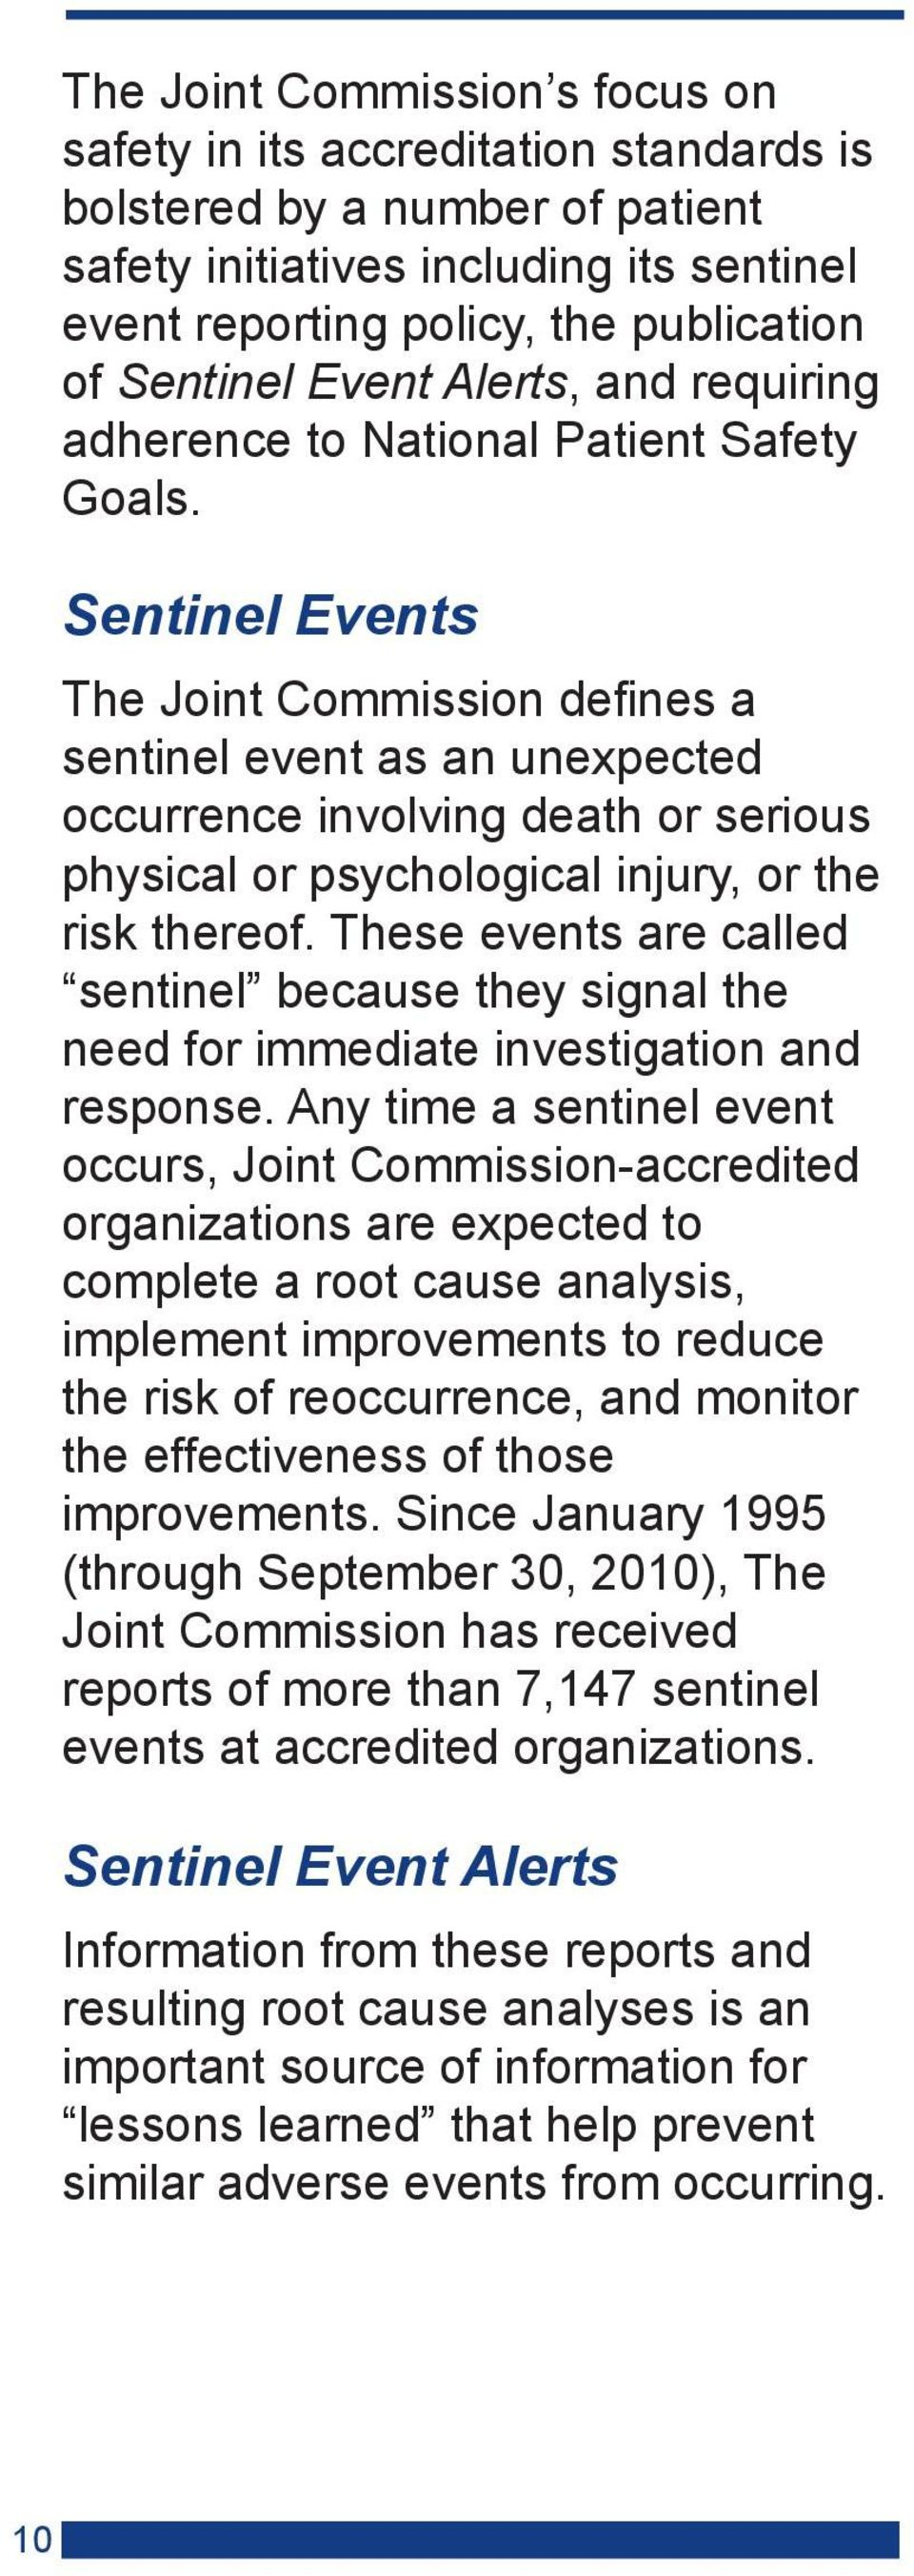 Sentinel Events The Joint Commission defines a sentinel event as an unexpected occurrence involving death or serious physical or psychological injury, or the risk thereof.